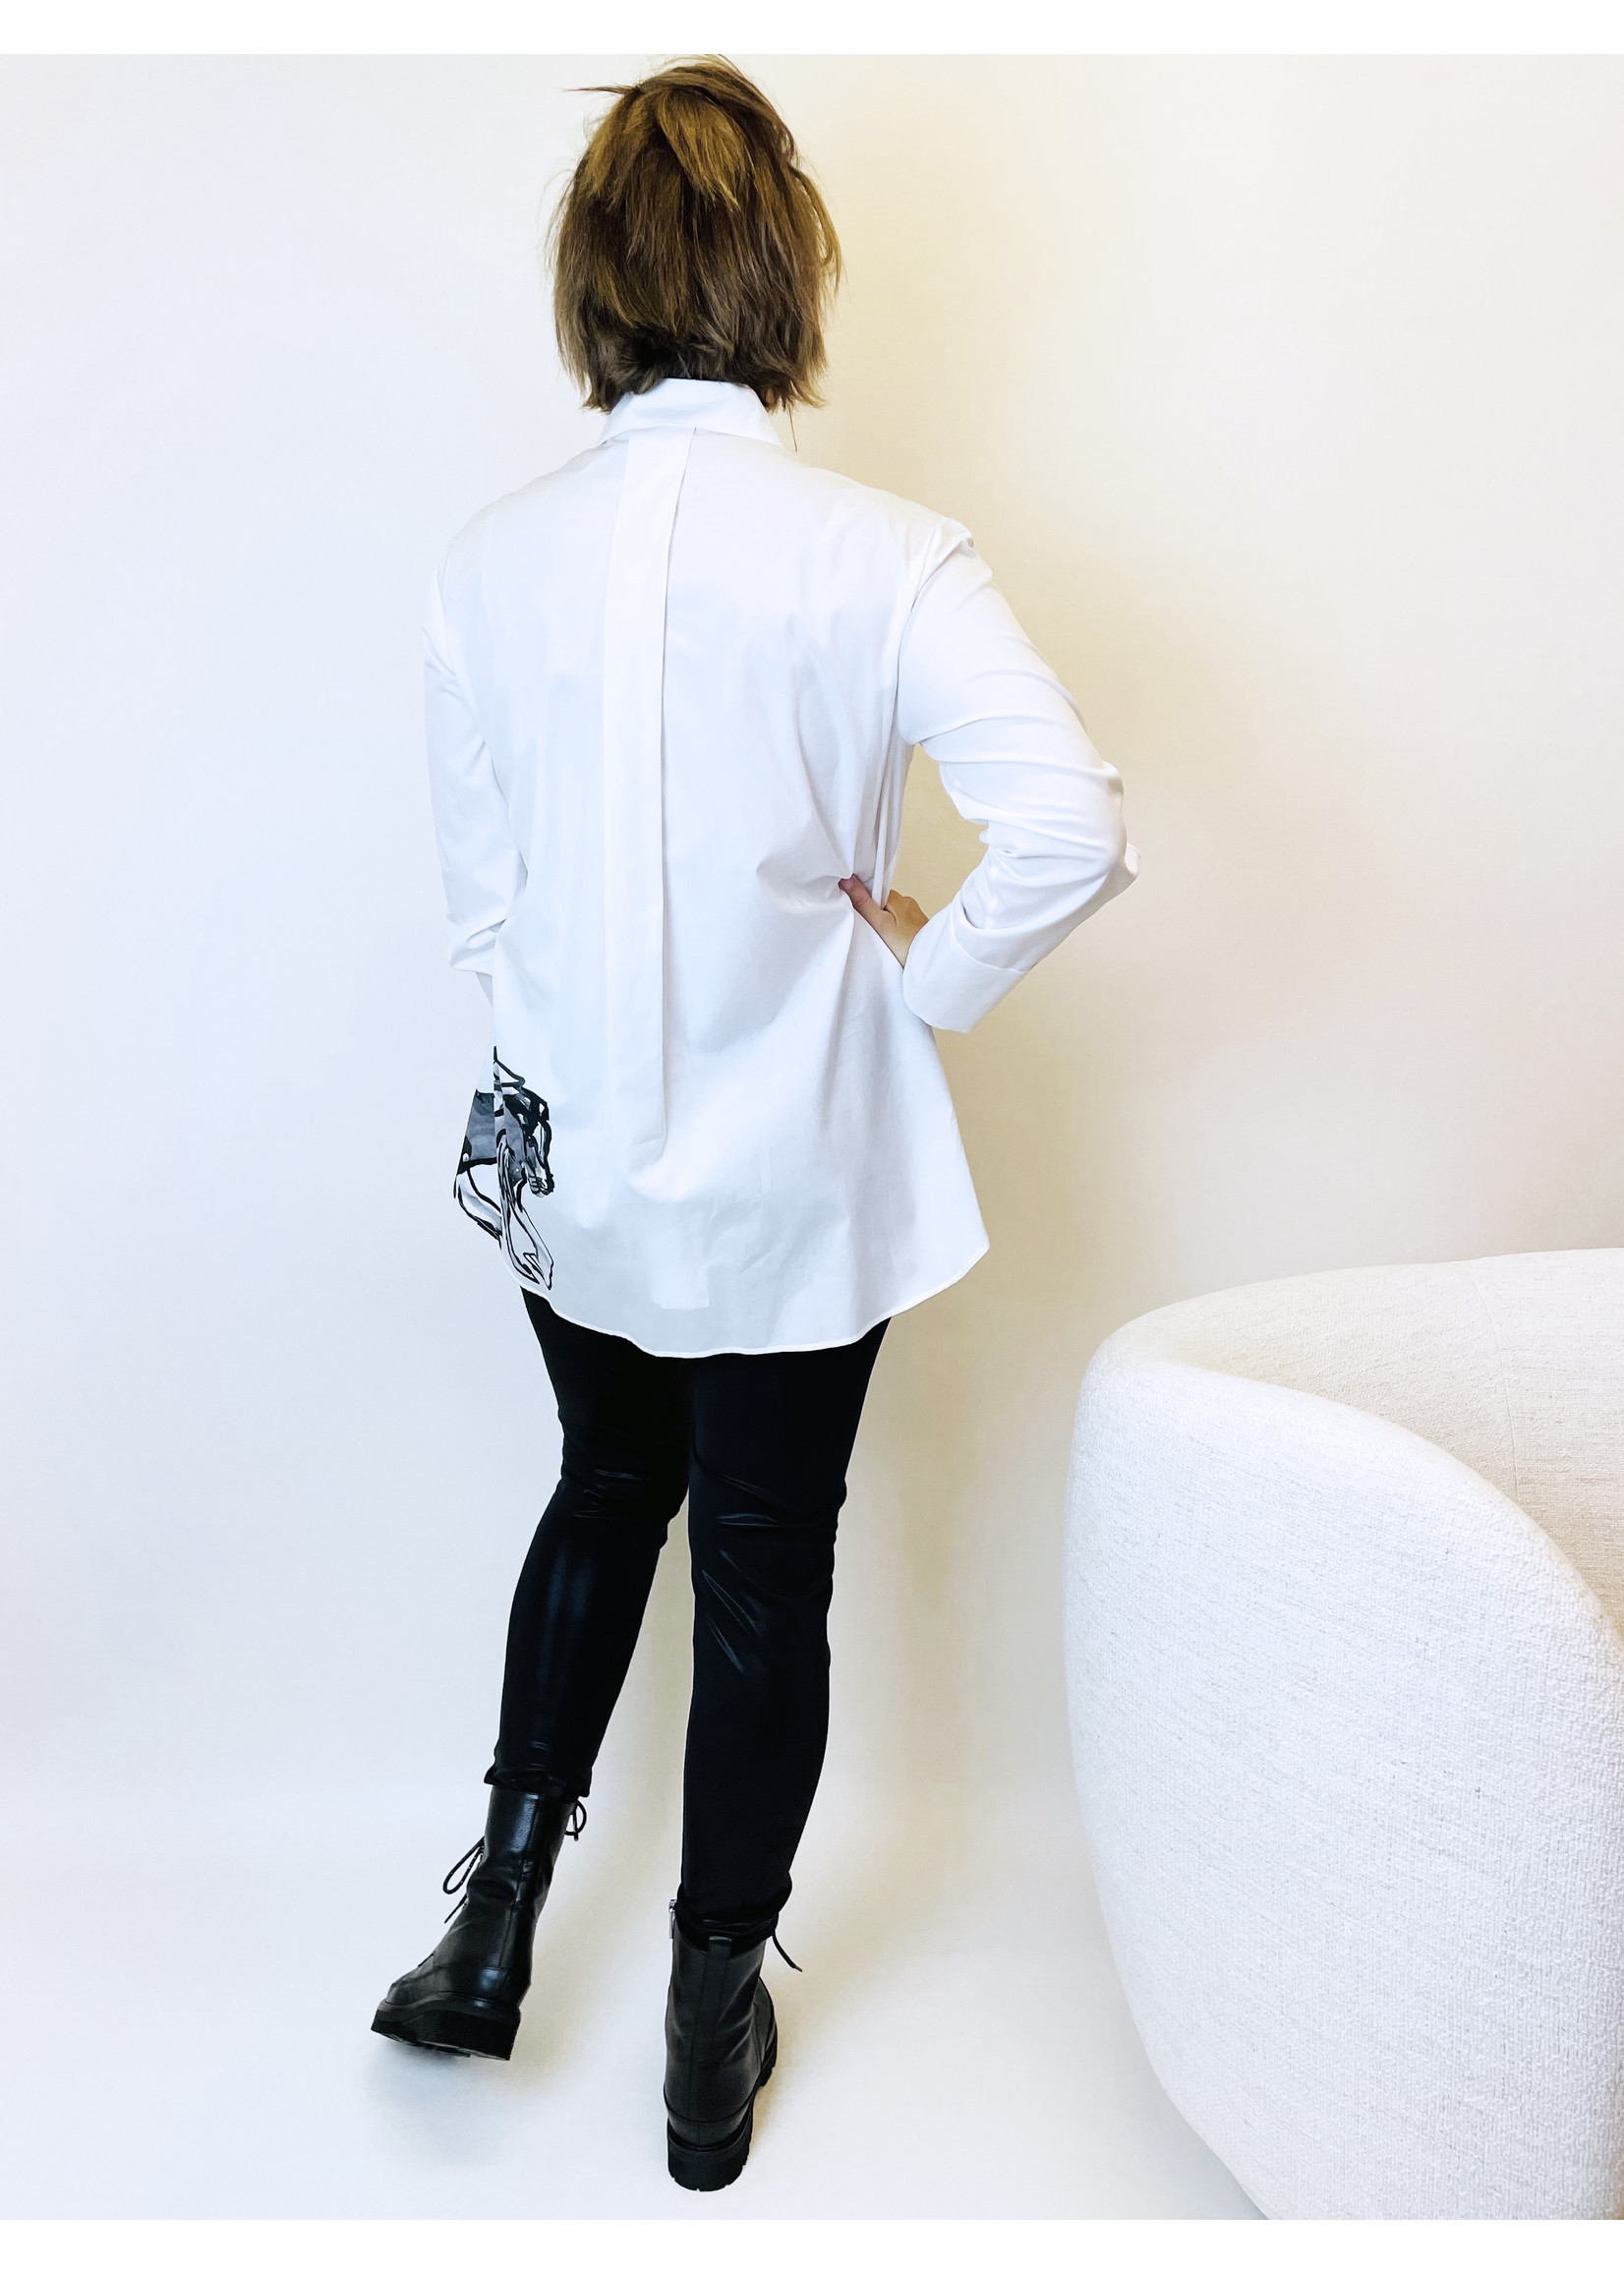 Blouse RC 51.02 W80 white and black